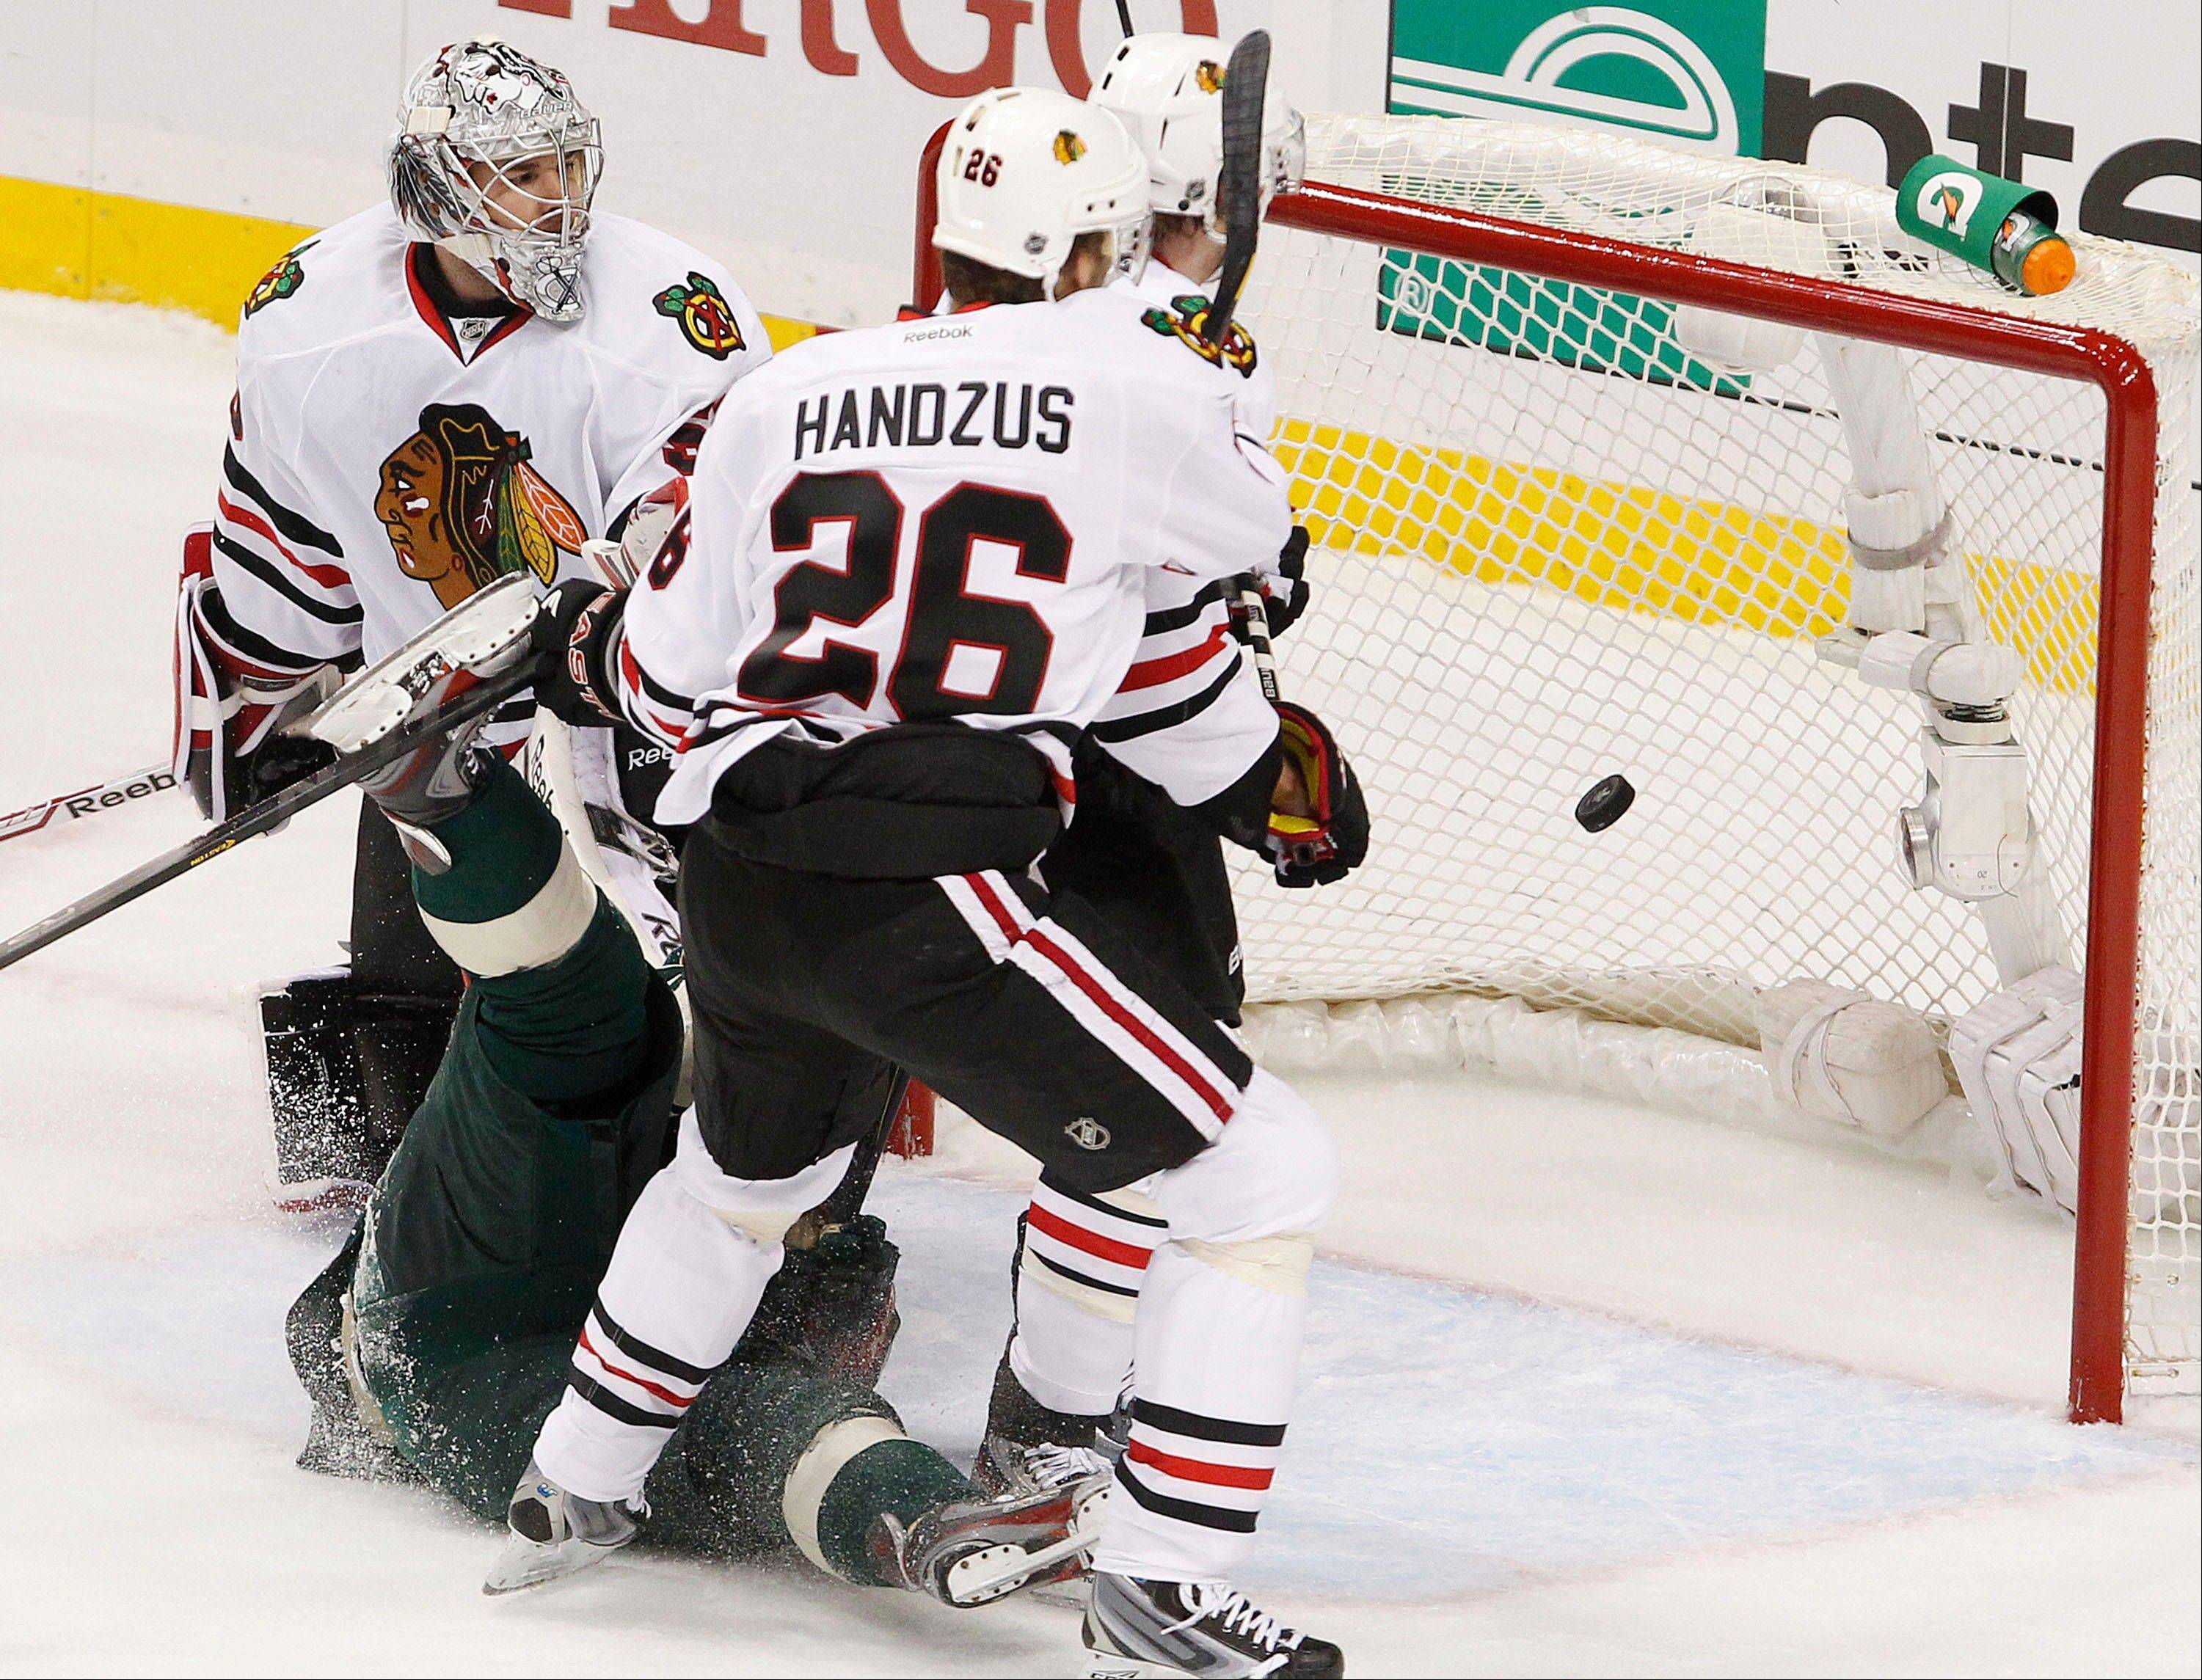 Blackhawks goalie Corey Crawford and center Michal Handzus watch as a Pierre-Marc Bouchard goal goes into the net in Sunday�s first period in Game 3 of the Hawks� first-round playoff series with the Minnesota Wild.